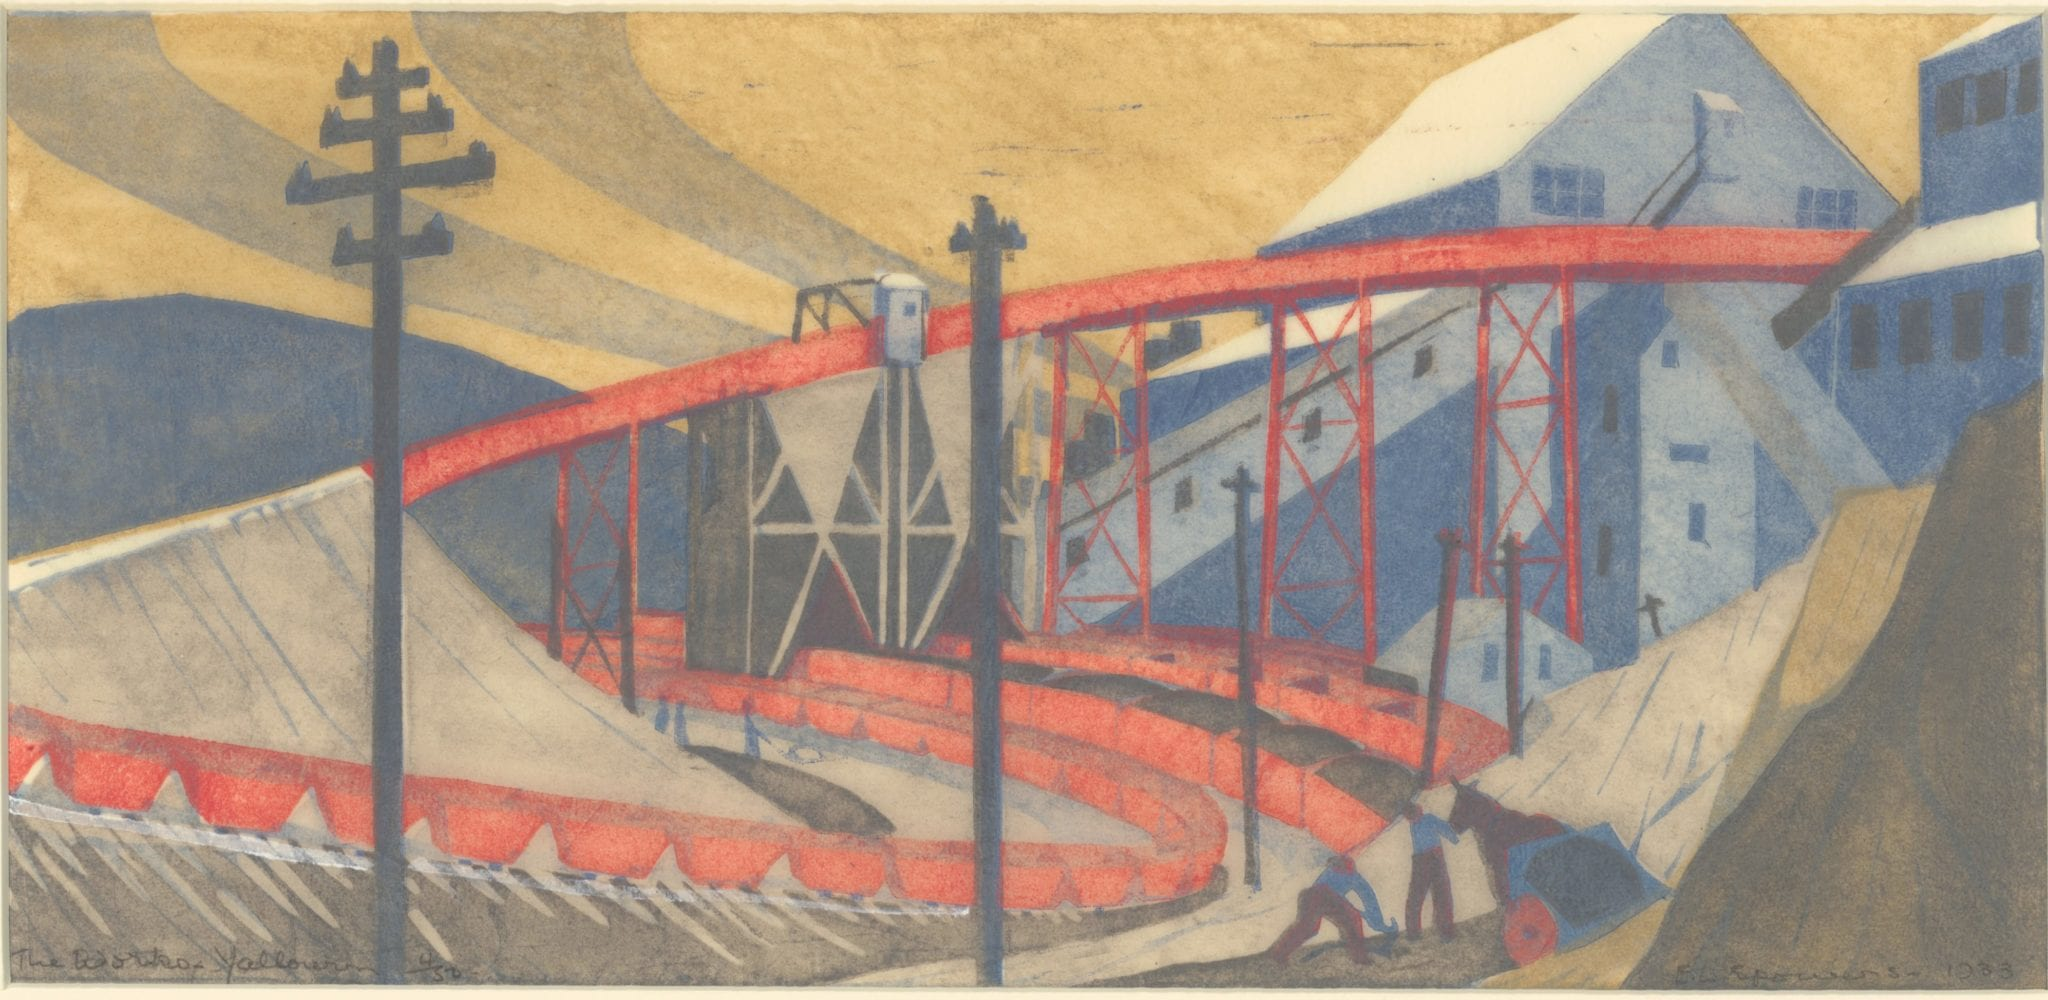 Ethel Spowers, The Works, Yallourn, 1933. Linocut 16 x 34cm plate. Latrobe Regional Gallery collection